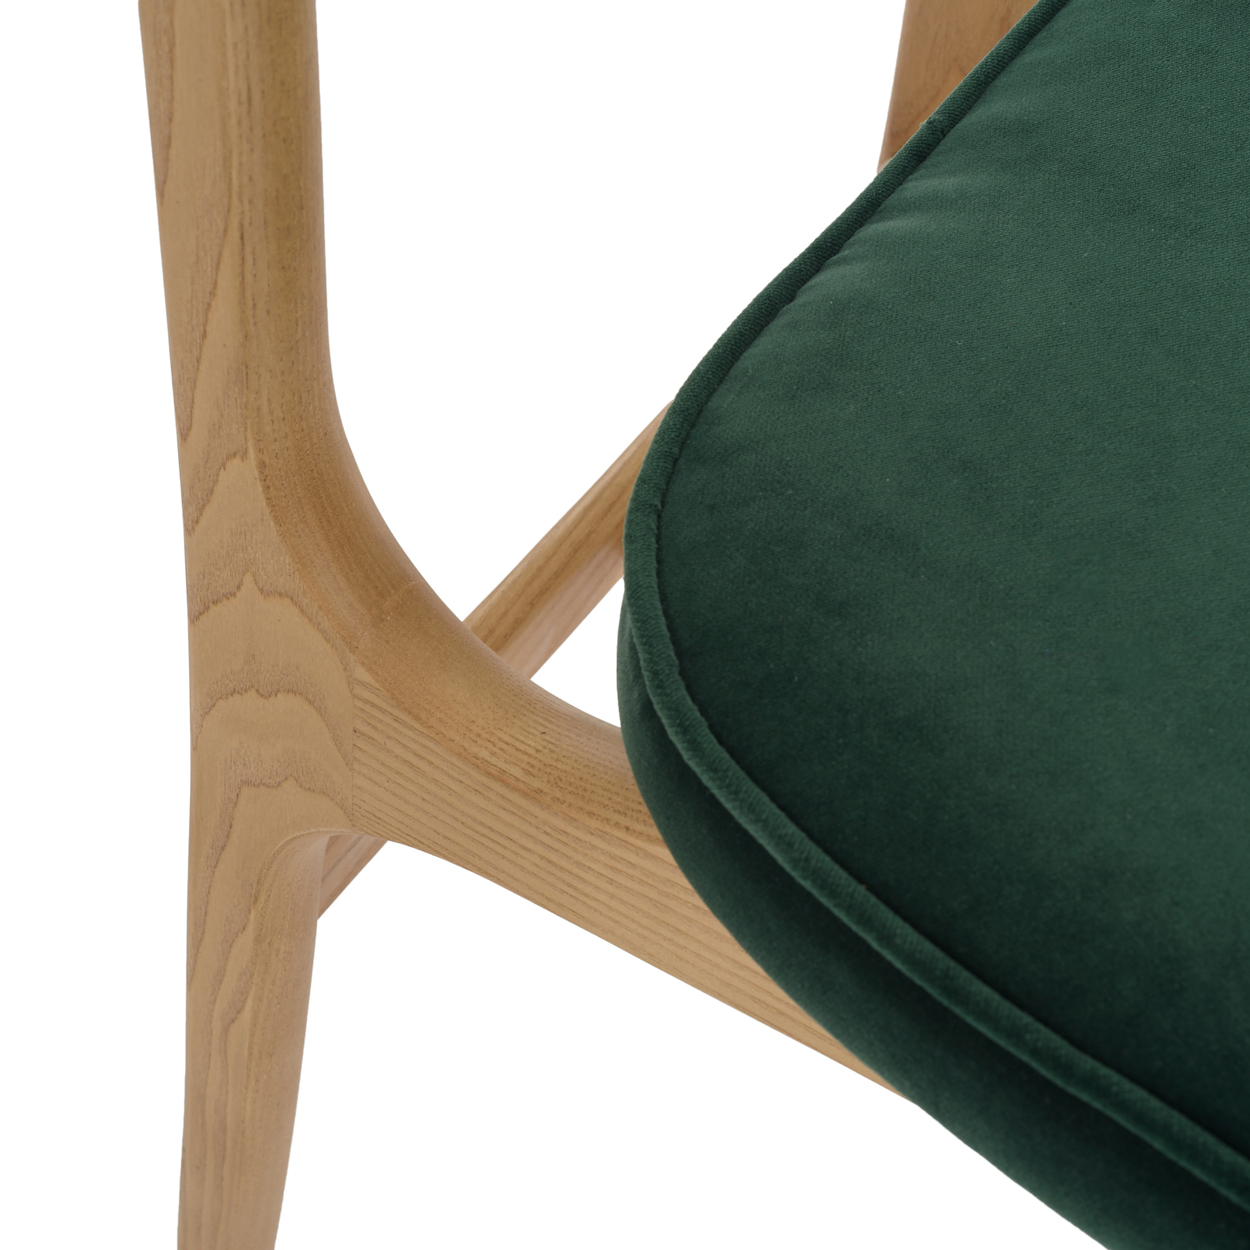 366 Concept 200-190 Dining Chair Closeup Photo